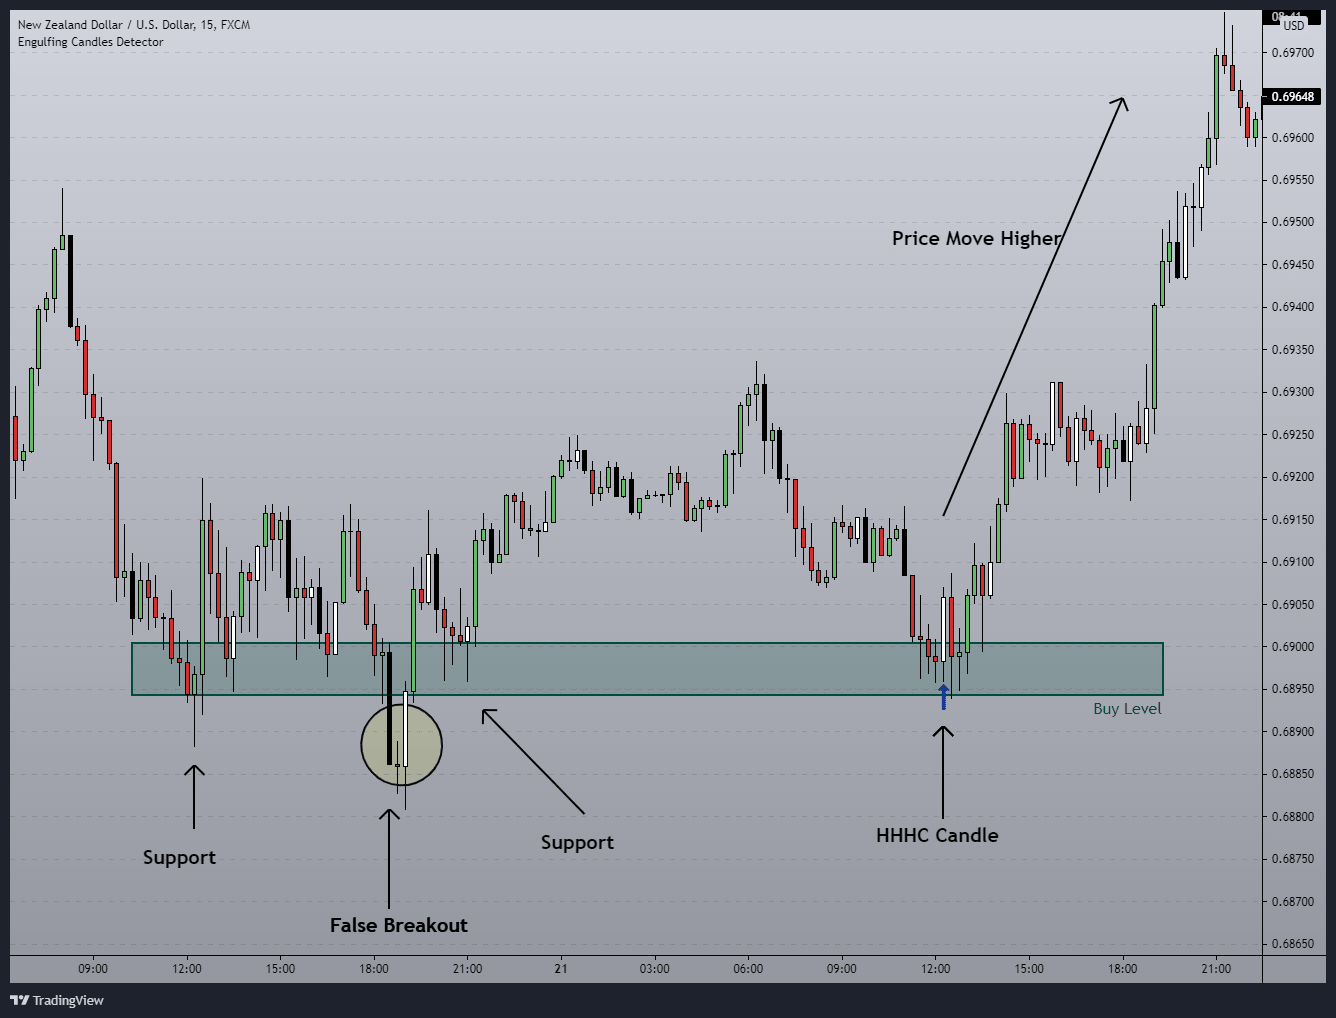 Long trade at support and resistance level